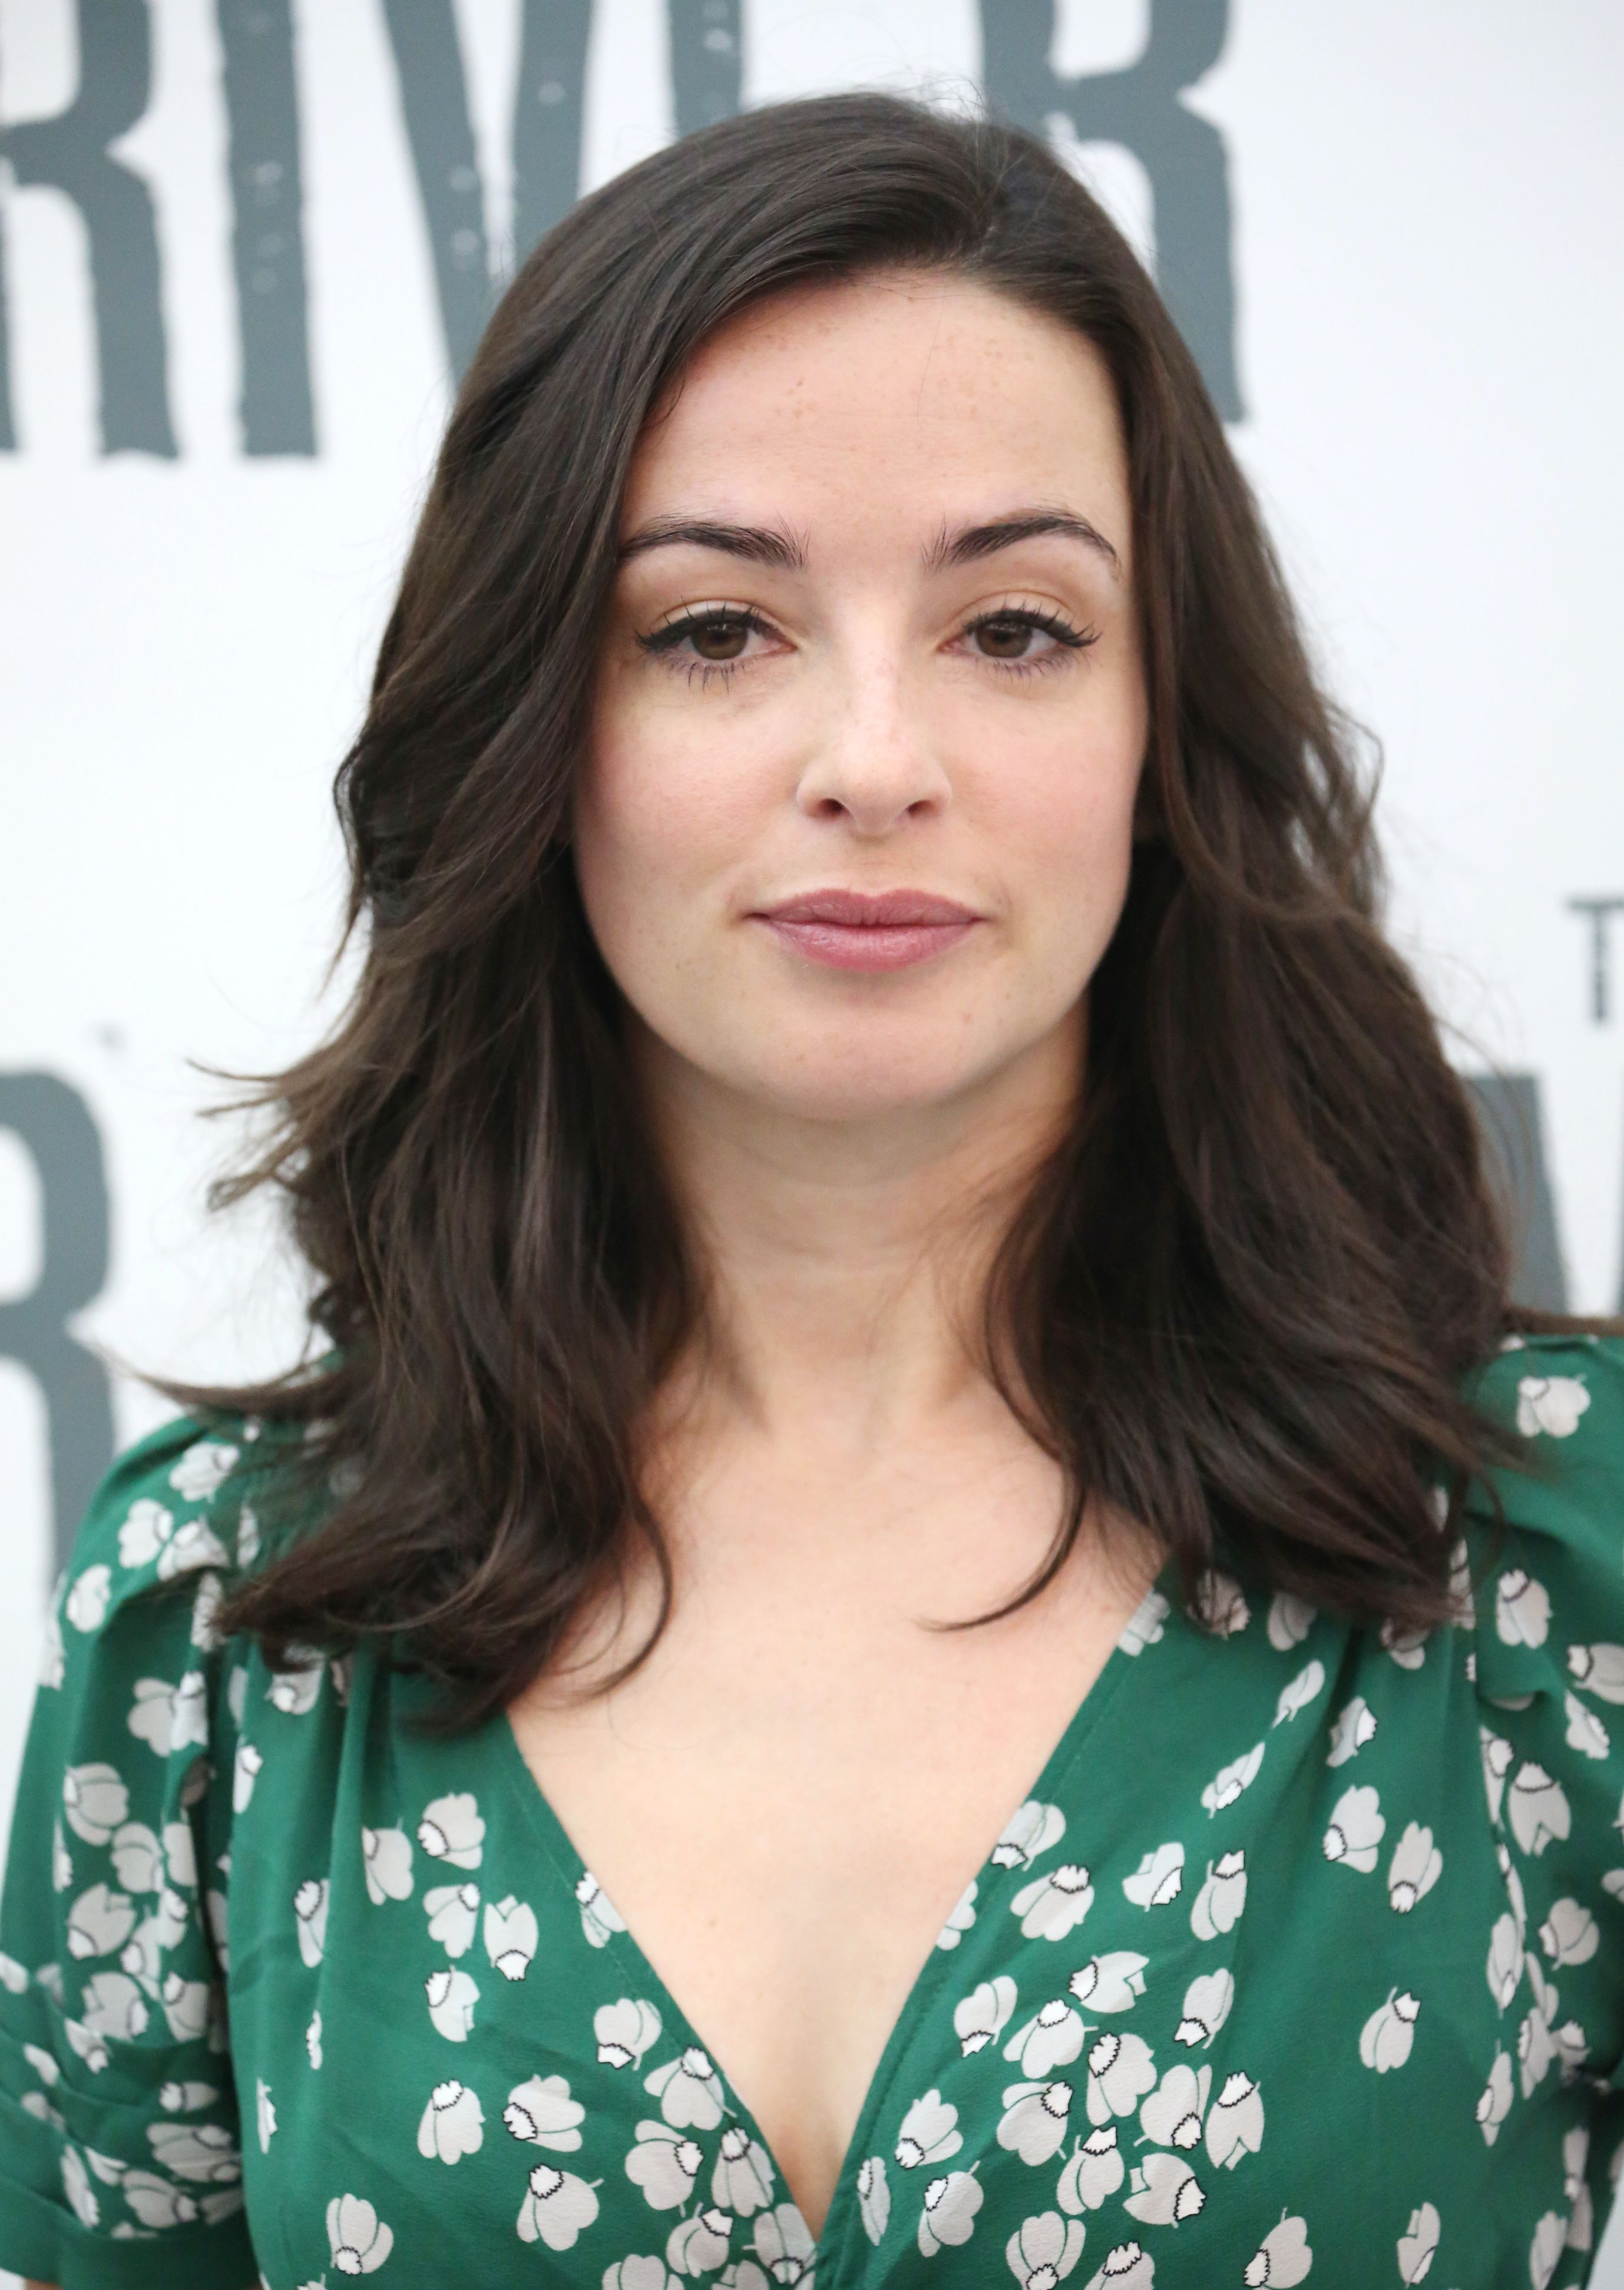 Laura Donnelly at the rehearsal studio for 'The River' in 2014 in New York | Source: Getty Images